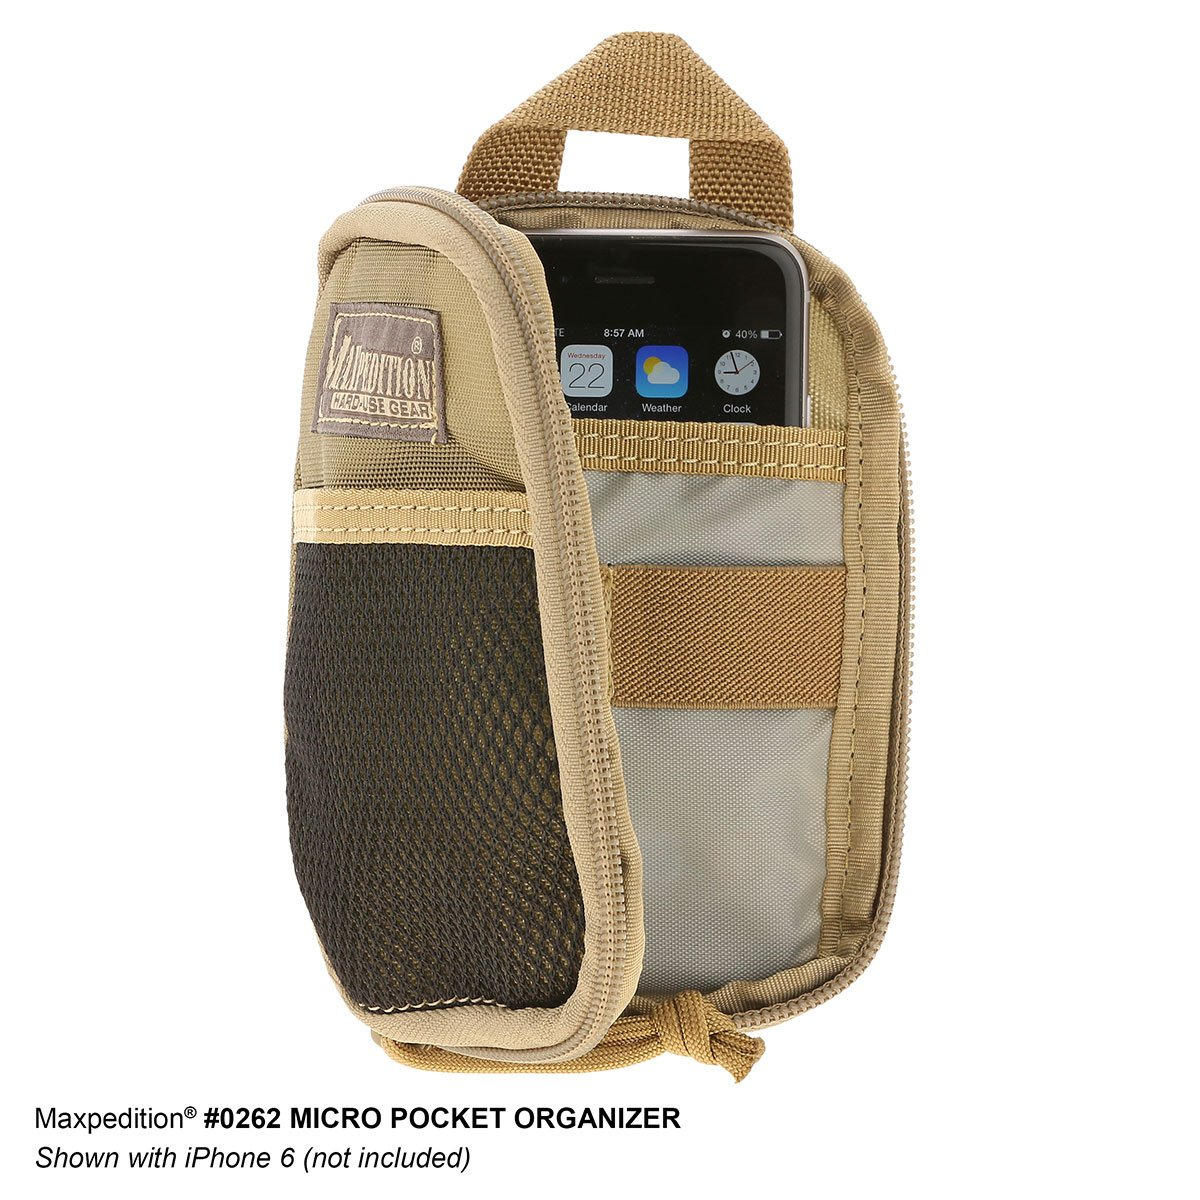 Pouch Maxpedition Micro Pocket Organizer – Black